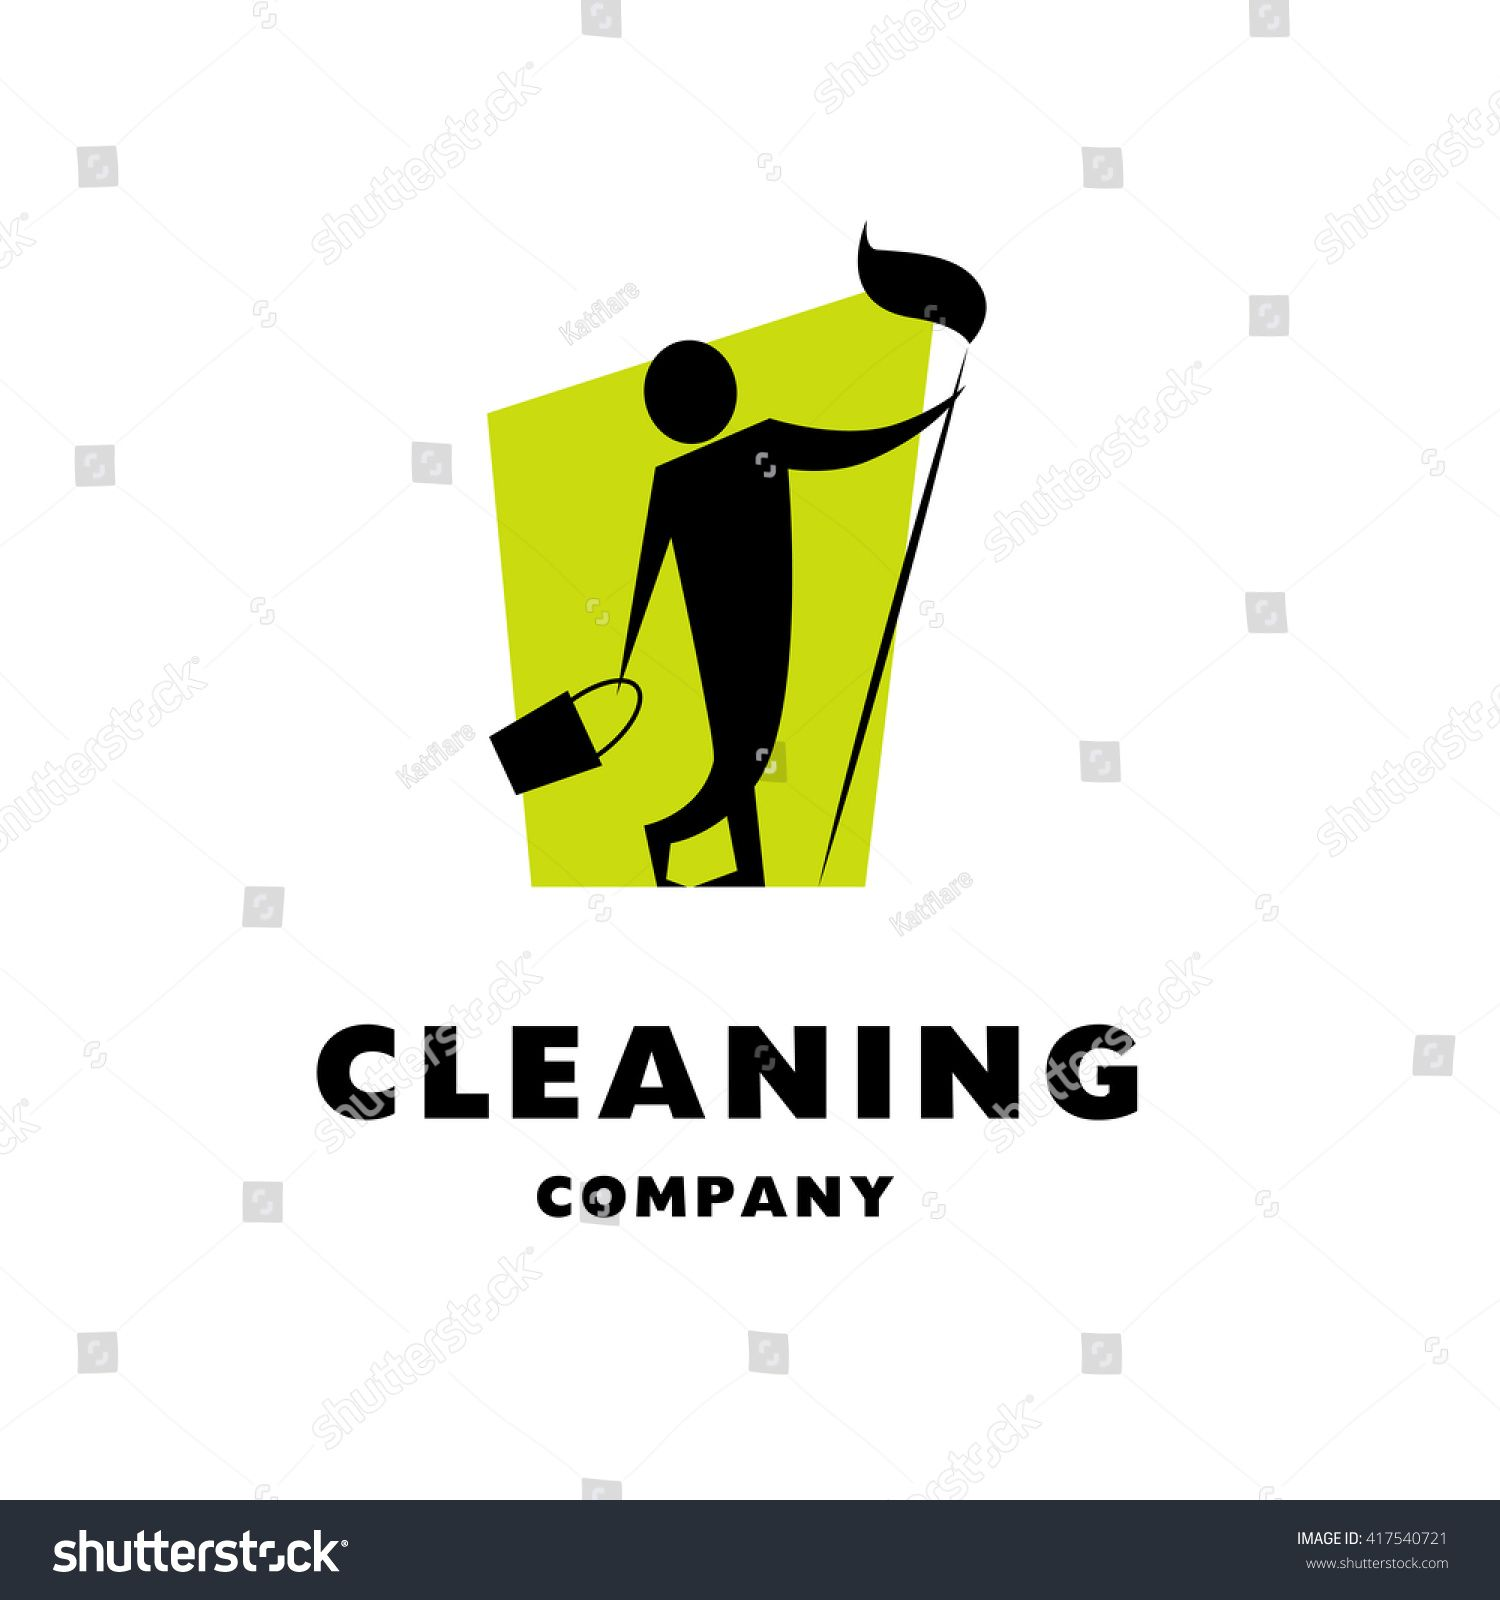 vector logo for cleaning company  flat cleaning service insignia  simple cleaning logo icon with